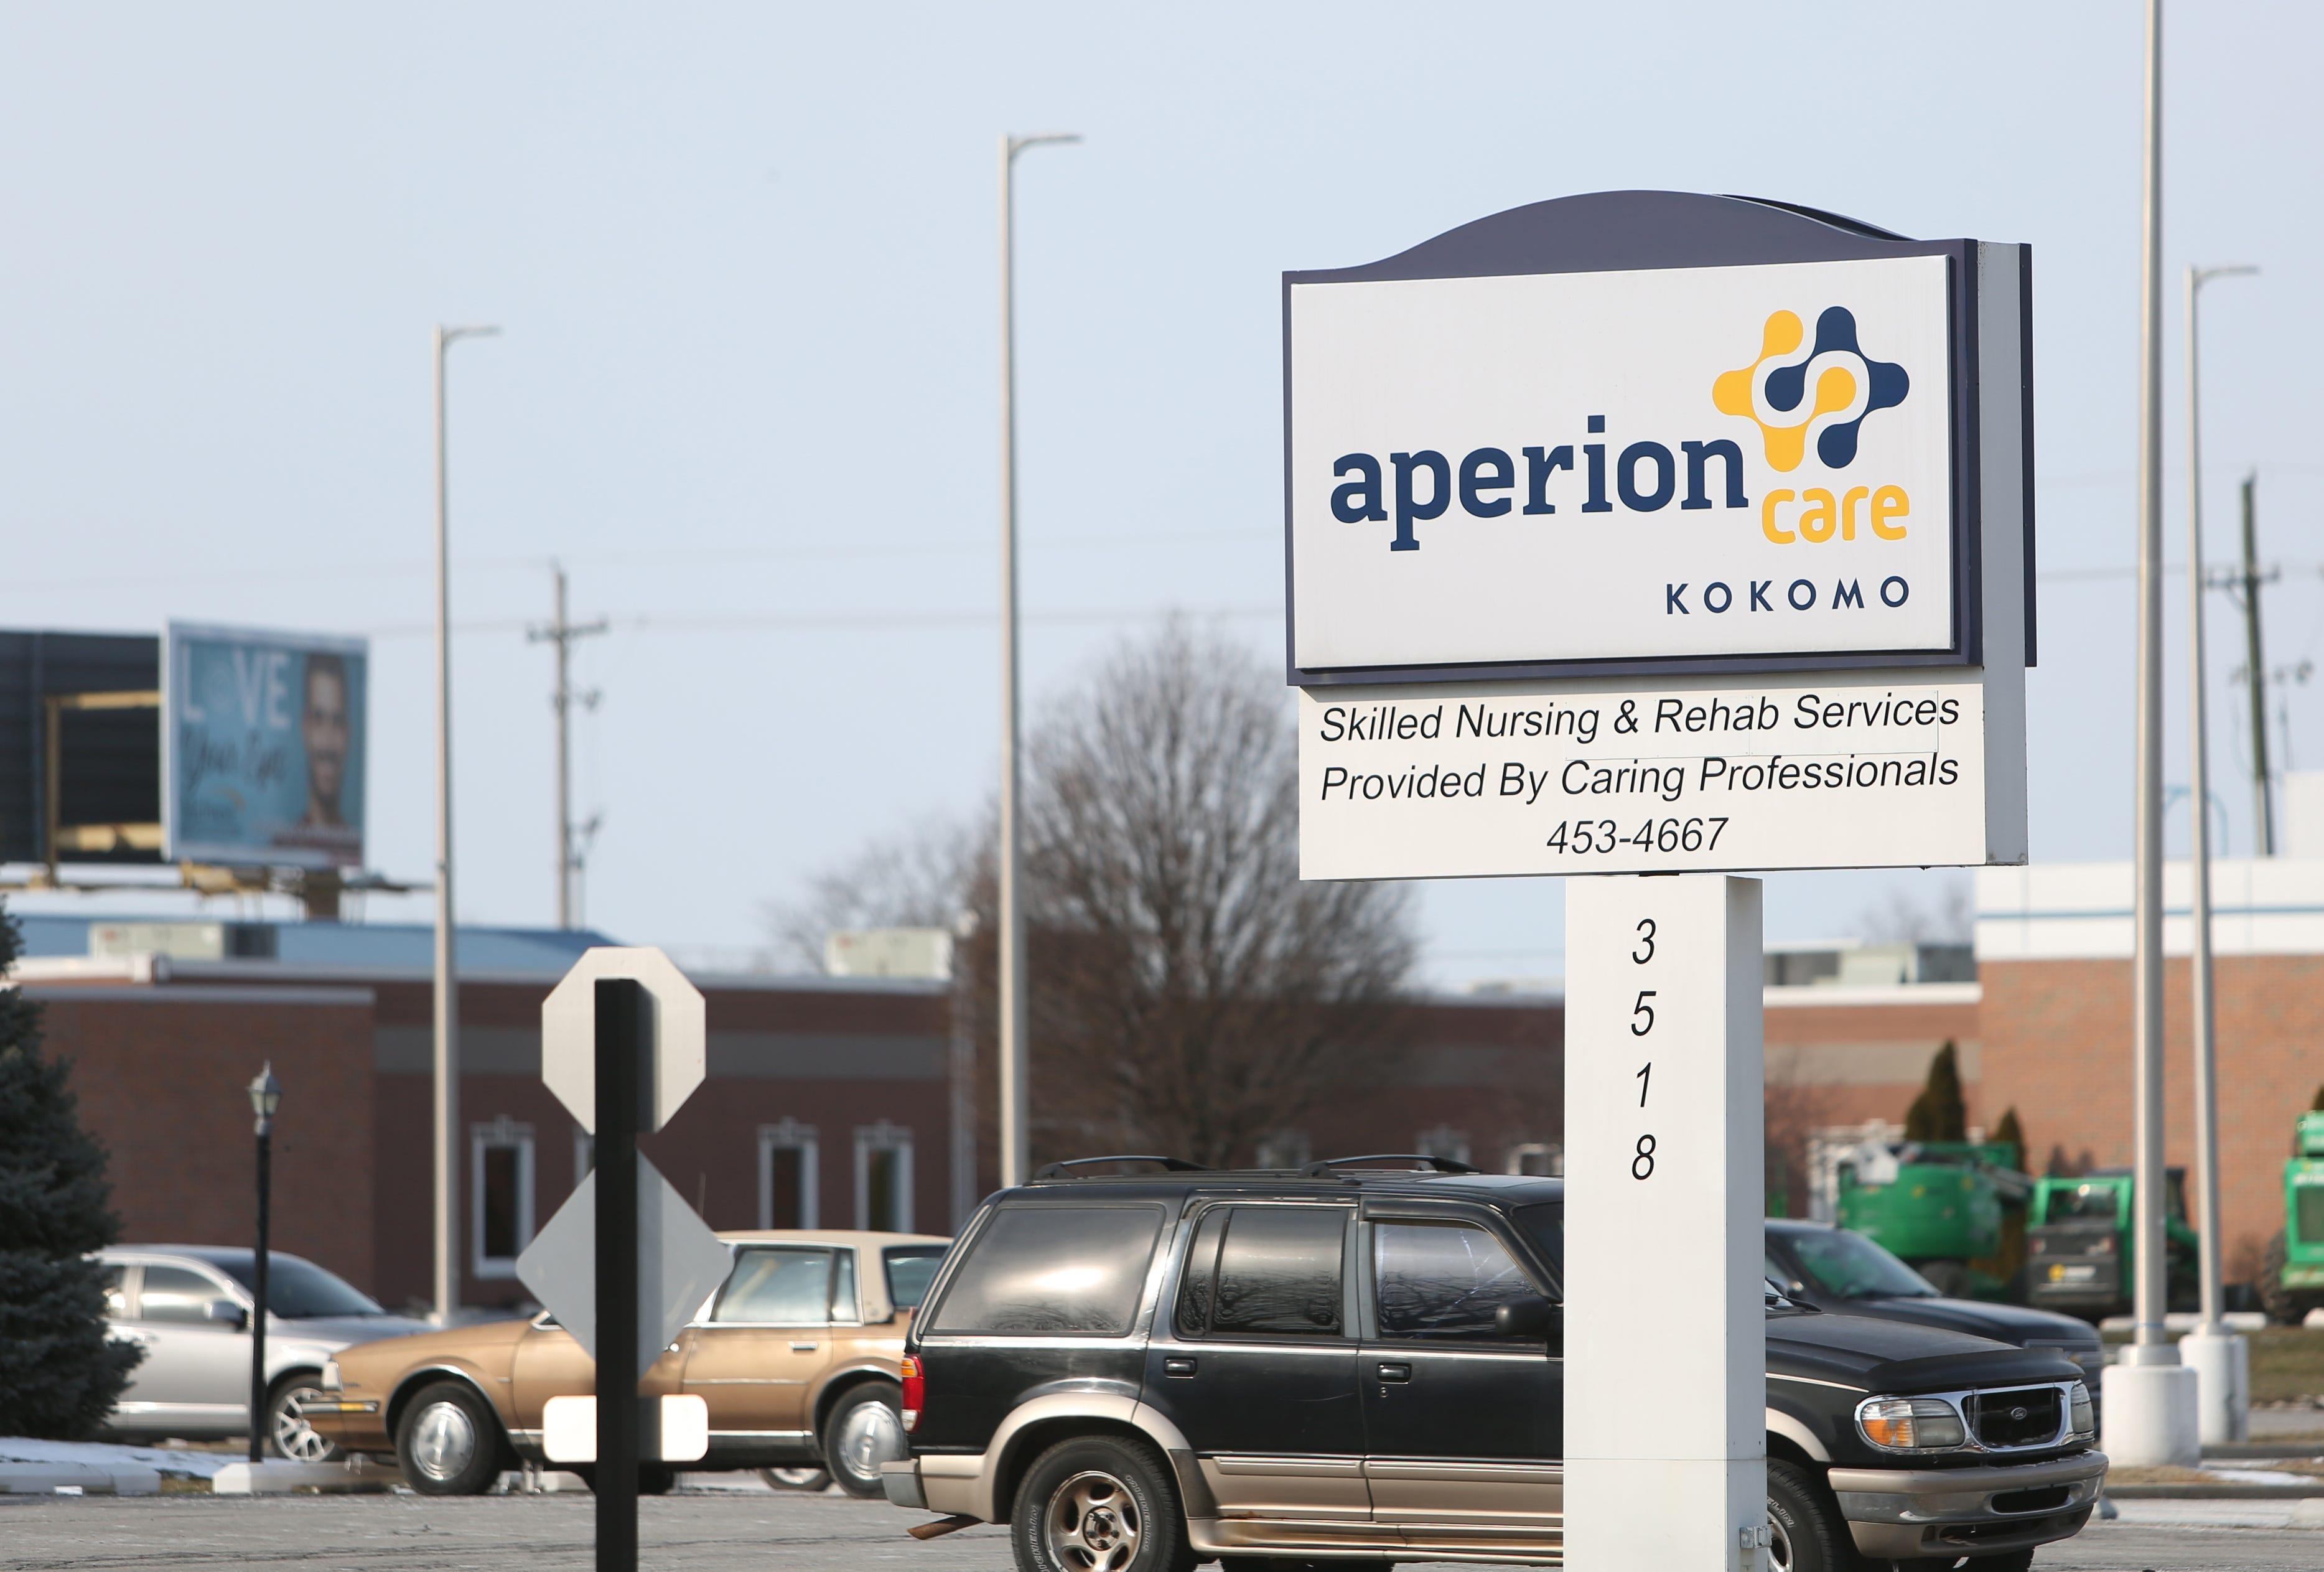 Inspectors with the Indiana State Department of Health recently cited Aperion Care Kokomo nursing home with more than 40 deficiencies — five times the national average.